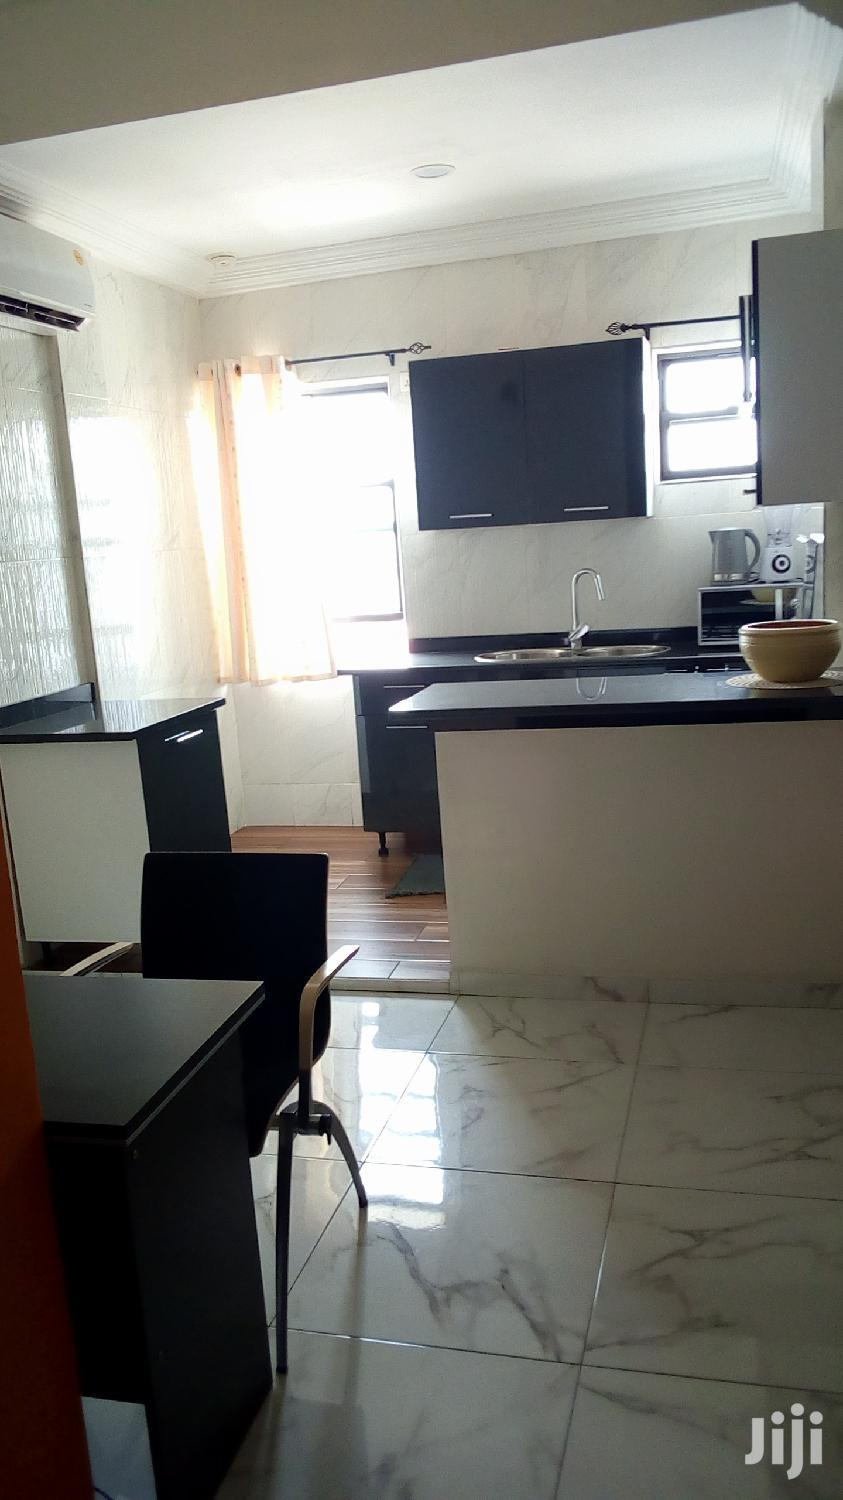 One Bedroom Studio Aprt | Houses & Apartments For Rent for sale in East Legon, Greater Accra, Ghana